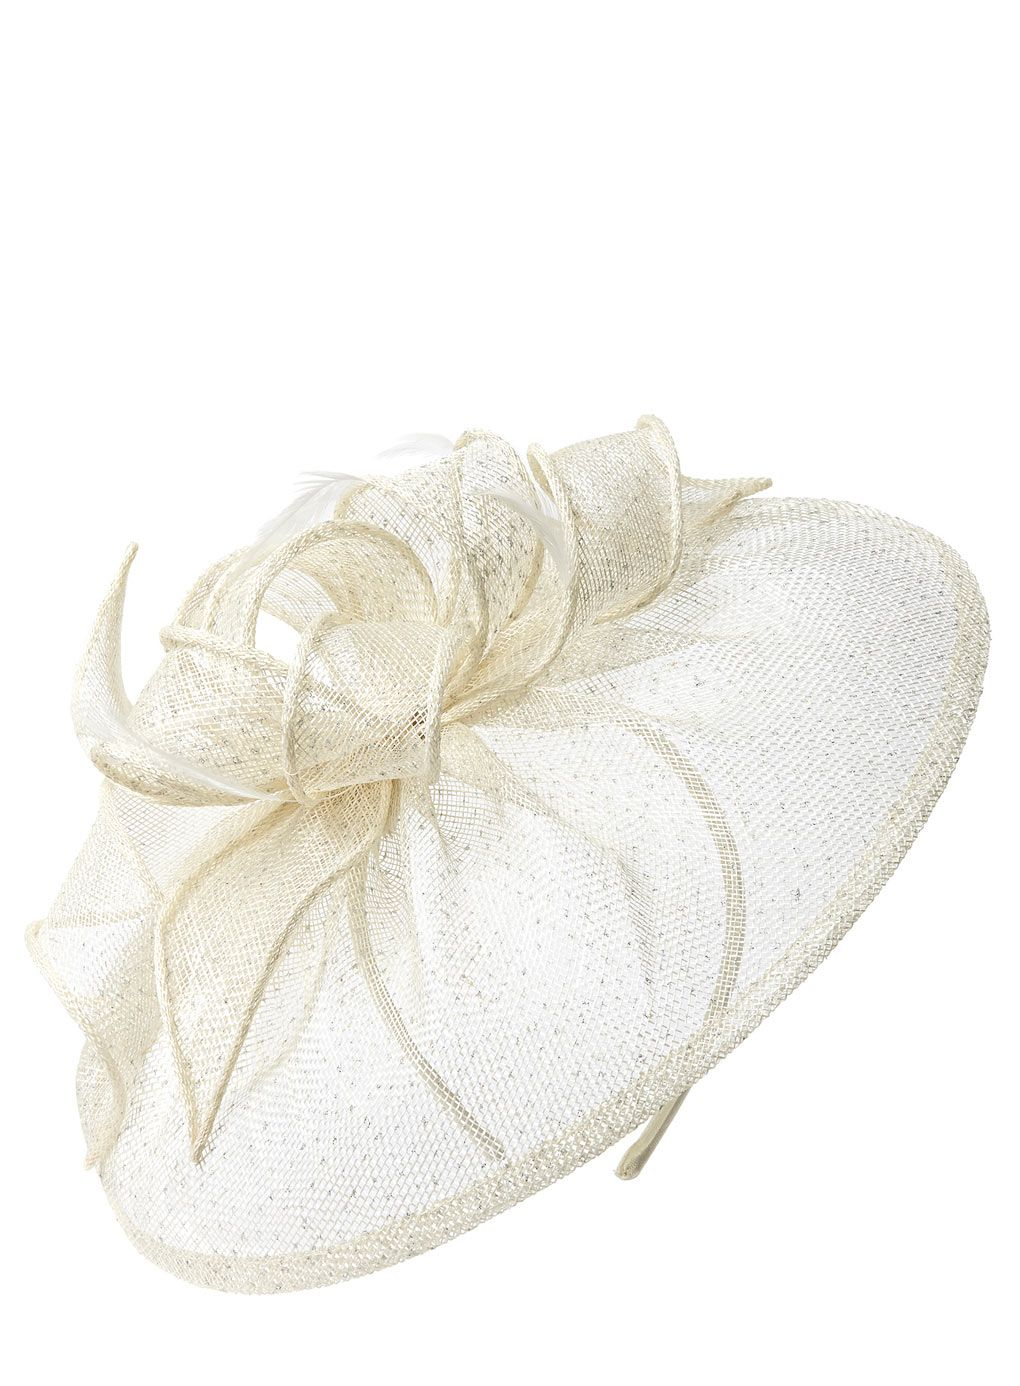 Ivory Sparkle Loop Disc Fascinator Http Www Weddingheart Co Uk